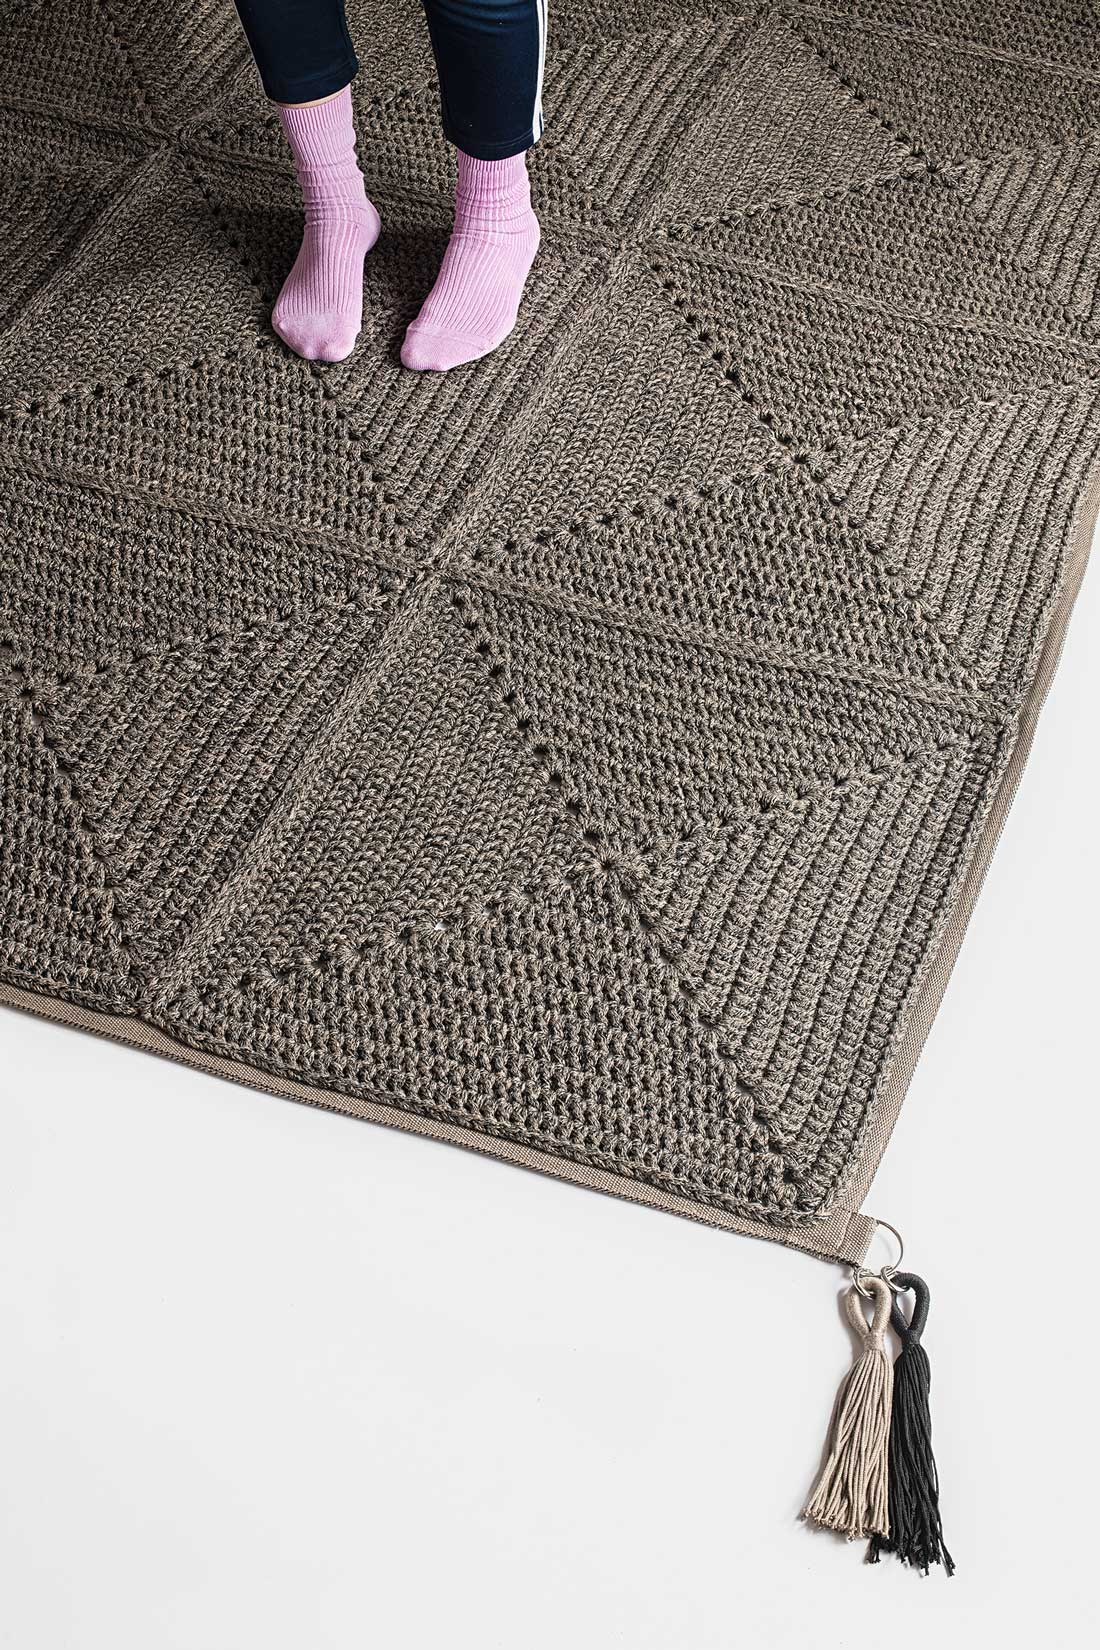 Outdoor/Indoor crochet rug